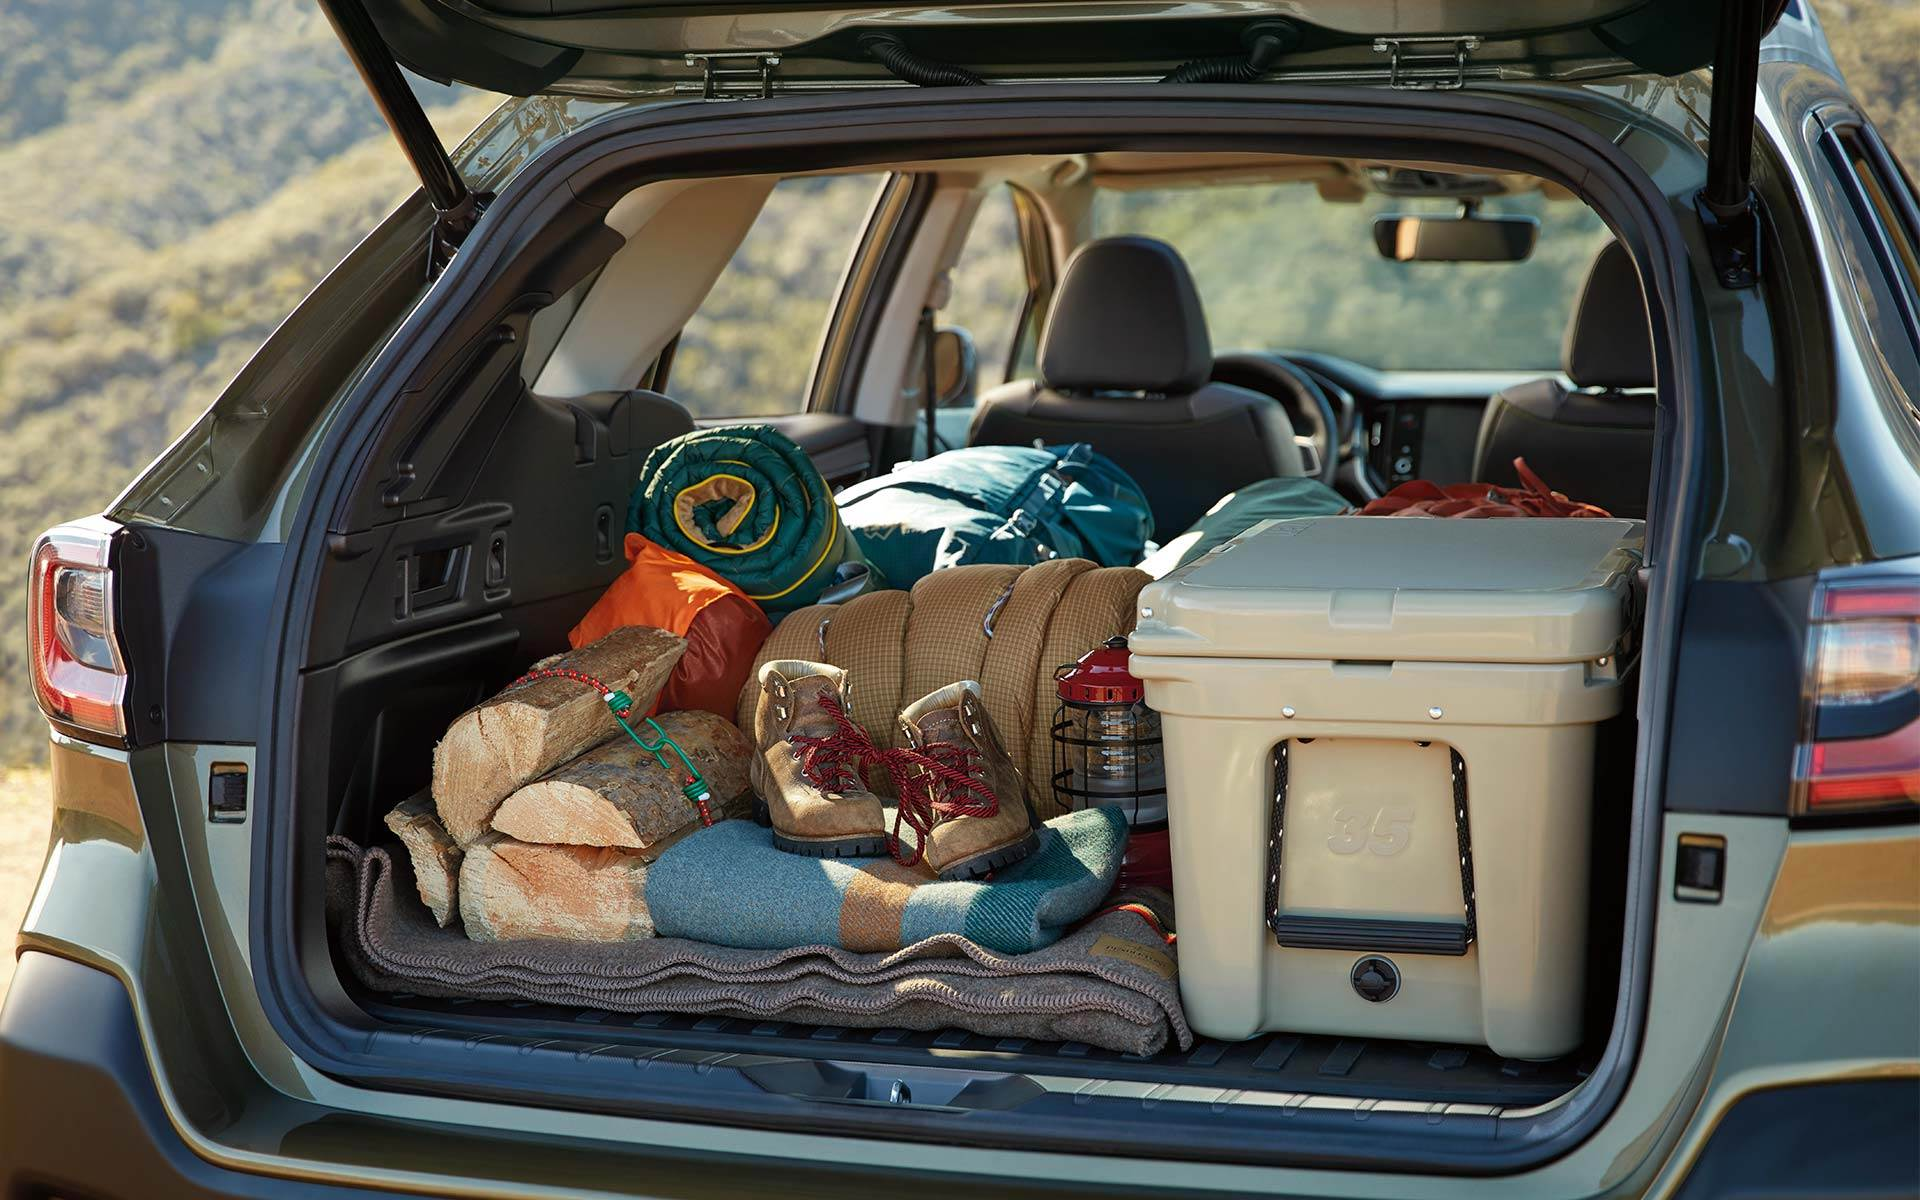 Subaru Image: Spacious cargo area with up to 75.7 cu. ft. of cargo volume